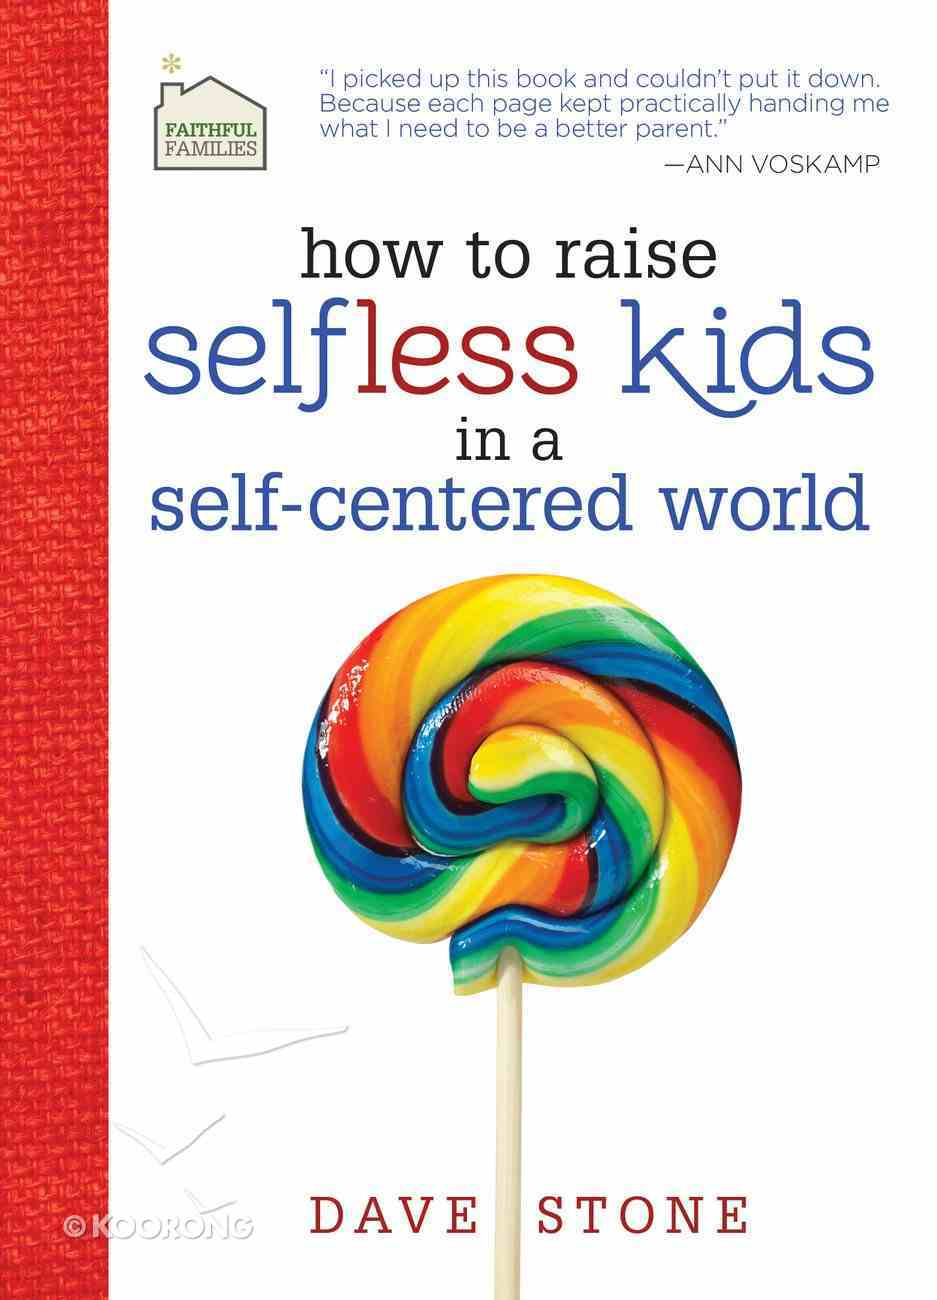 How to Raise Selfless Kids in a Self-Centered World eBook